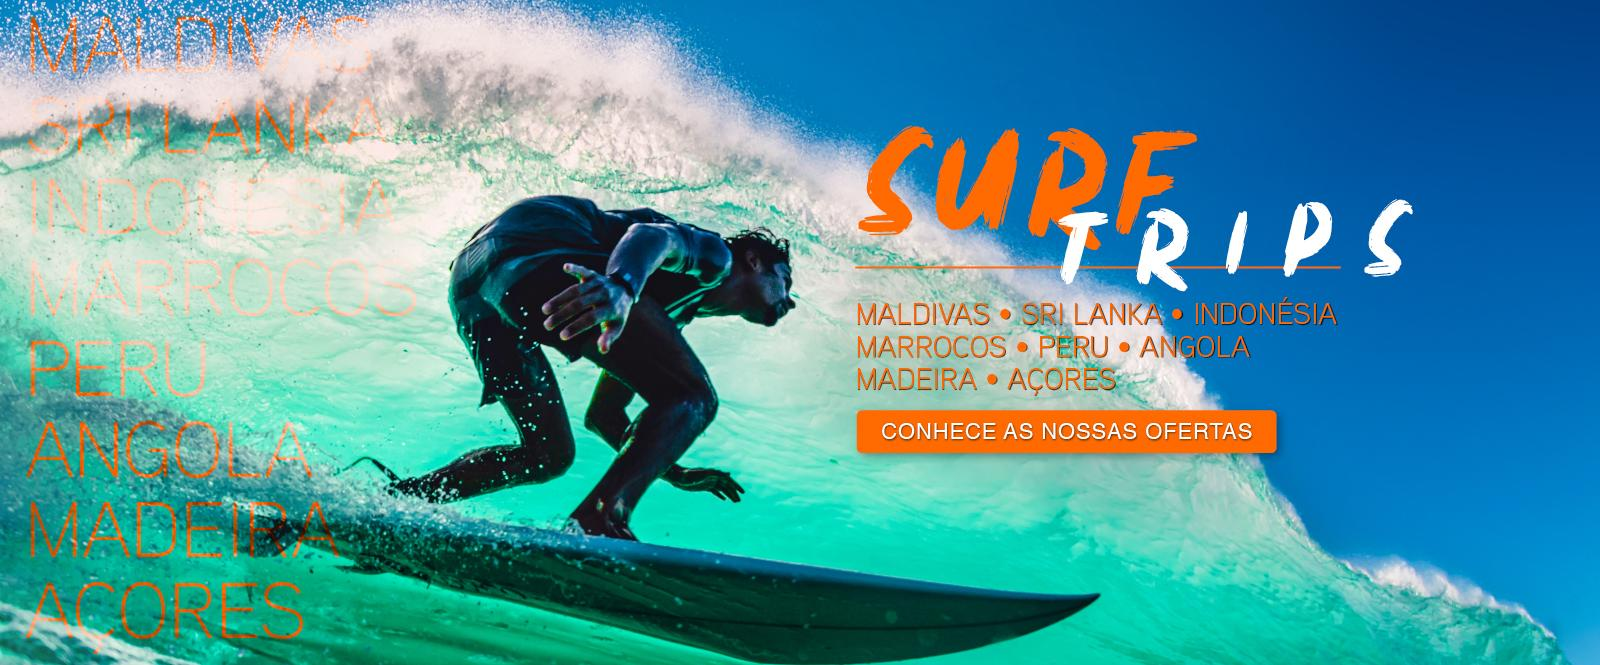 Promo Surftrips 2019 2020